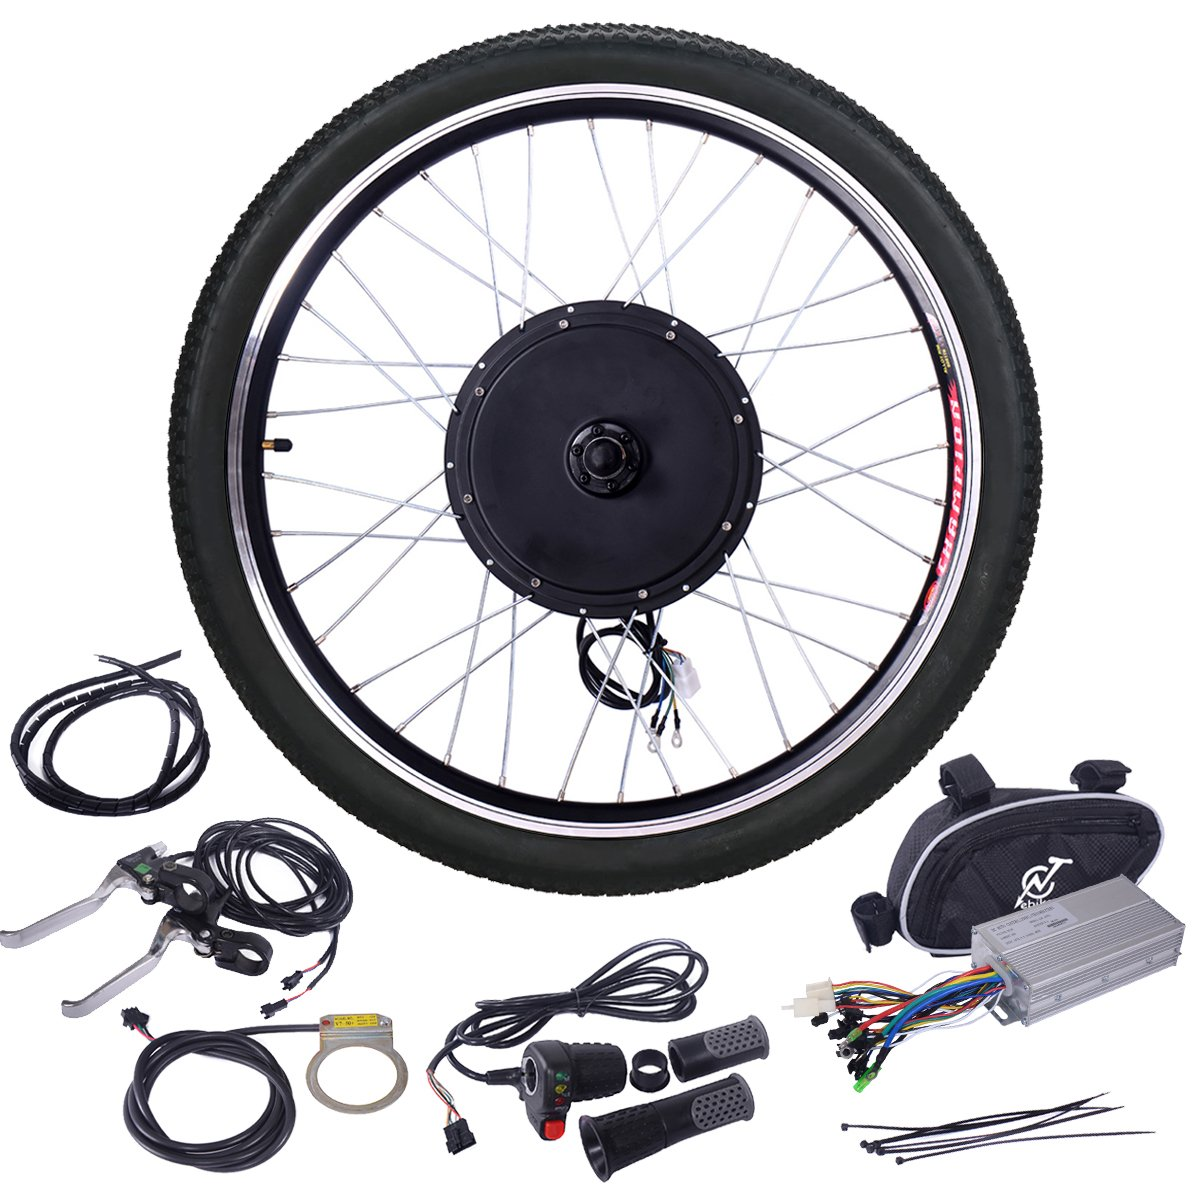 JAXPETY 48V 1000W Electric Bicycle Cycle E Bike 26'' Front Wheel Ebike Hub Motor Conversion Kit Hub Motor Wheel by JAXPETY